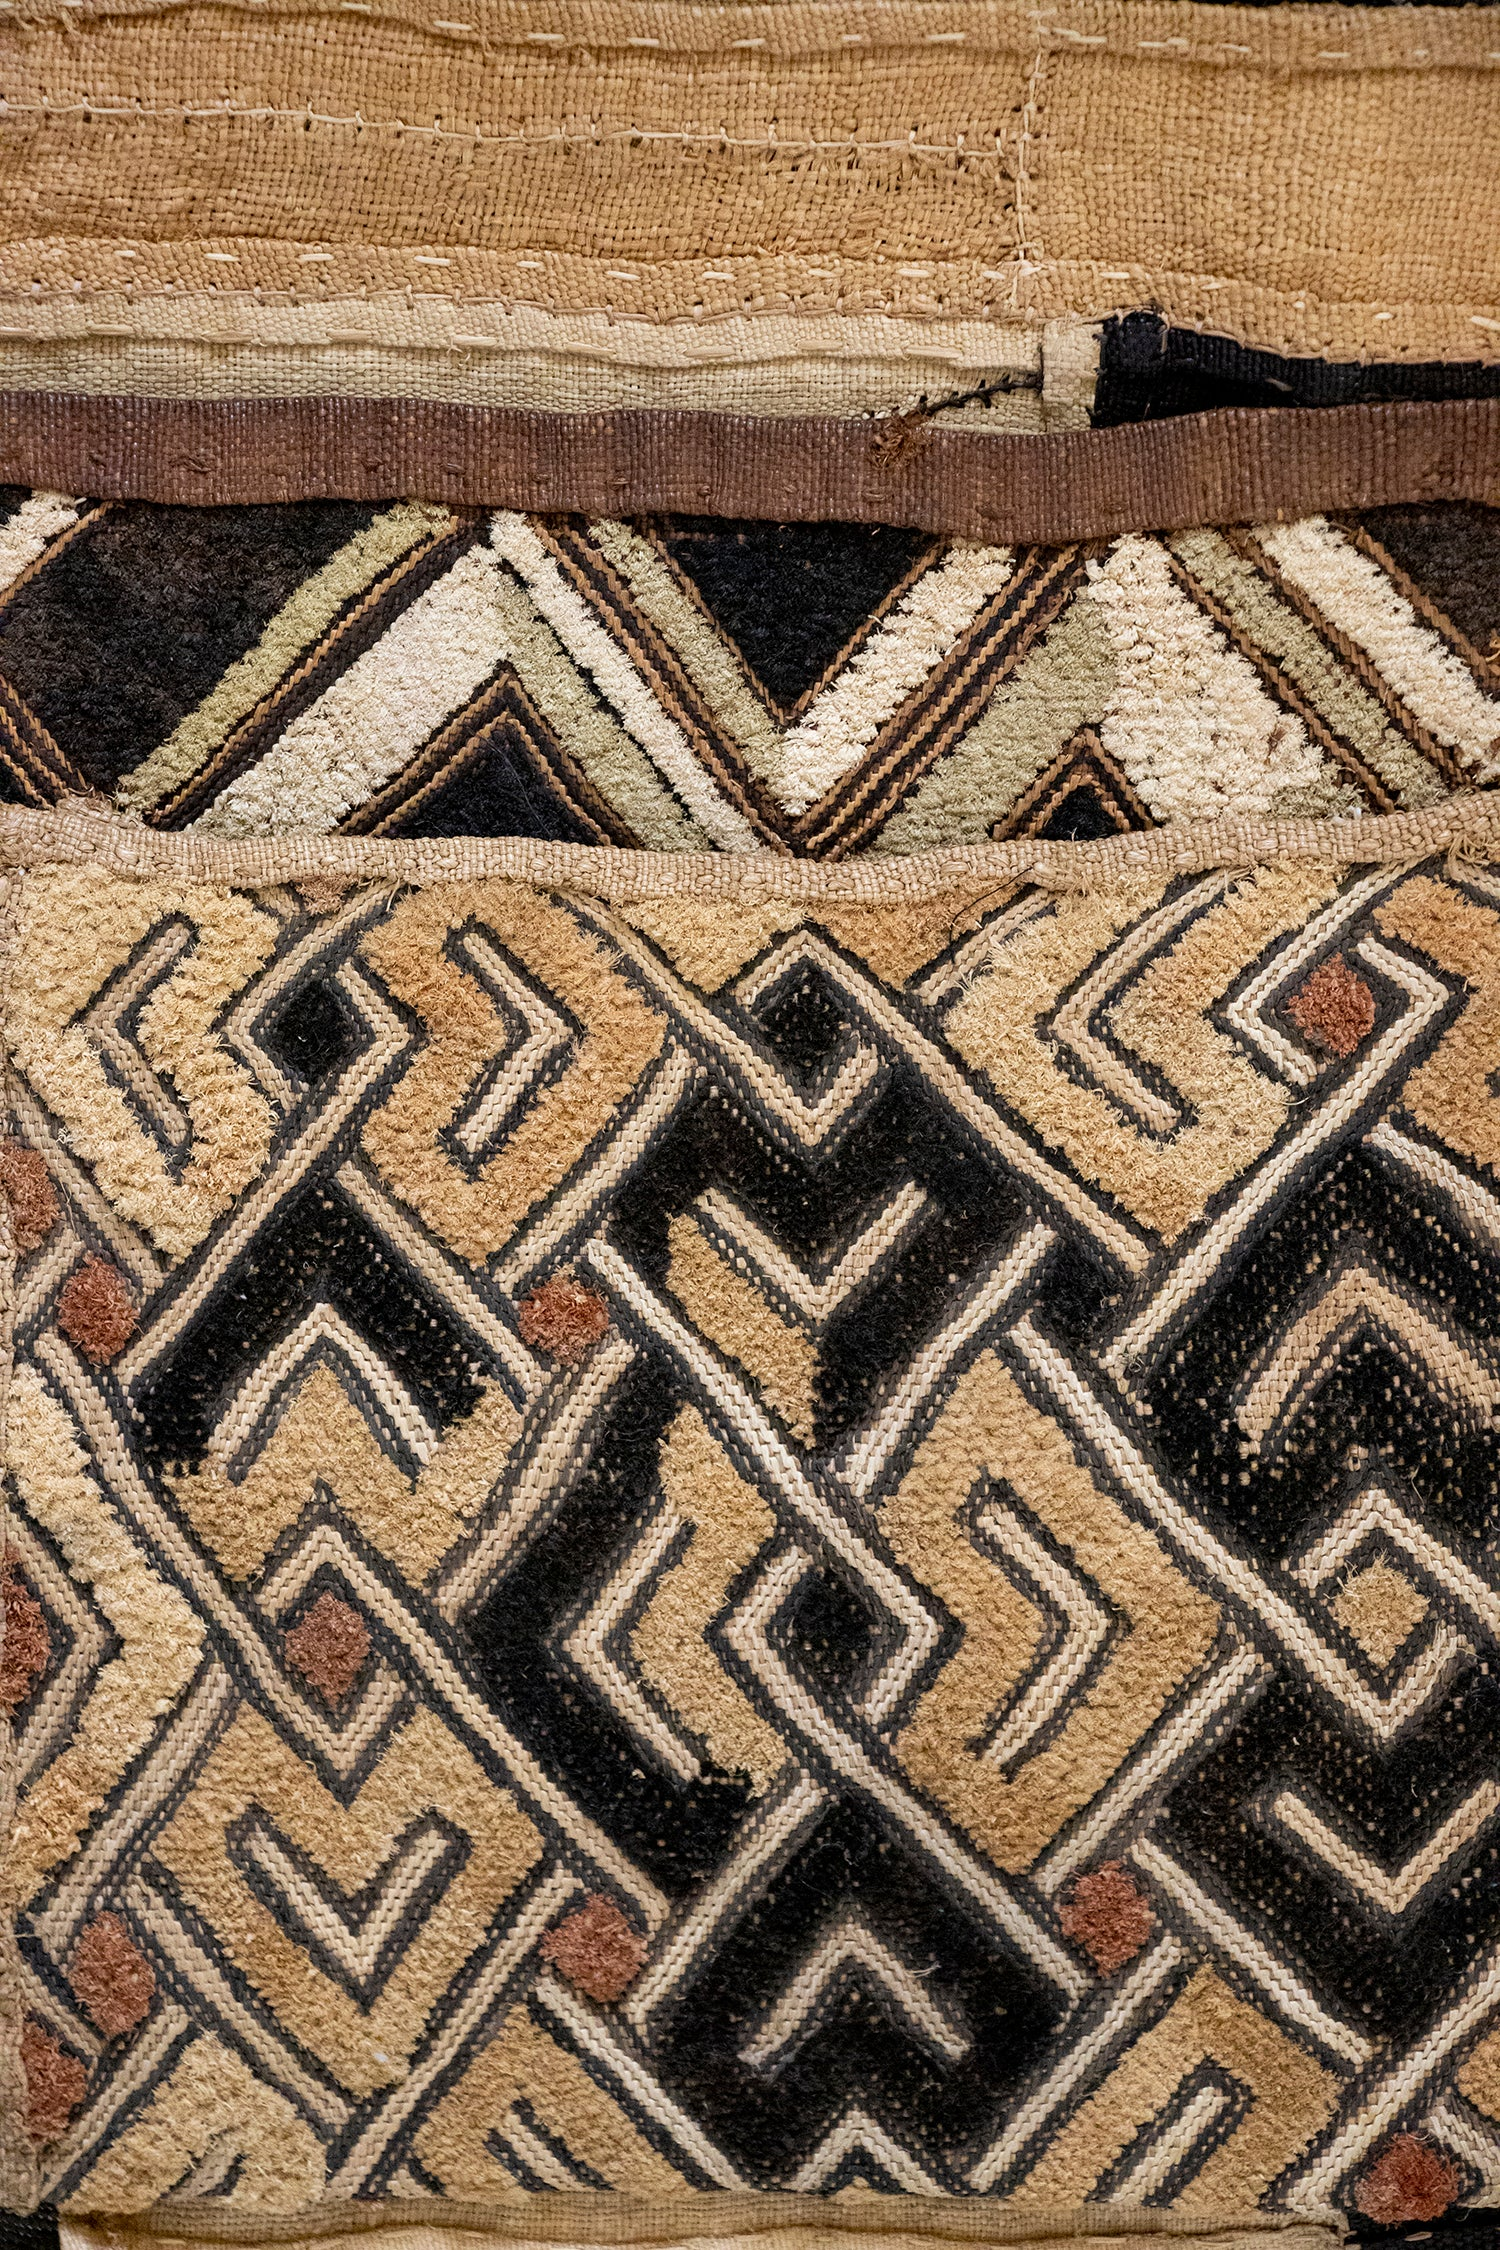 Safari Journal / Blog by Safari Fusion | African textiles / kuba cloth | A curated collection of Kuba Cloth collected on my travels to west and central Africa | Image © Kellie Shearwood